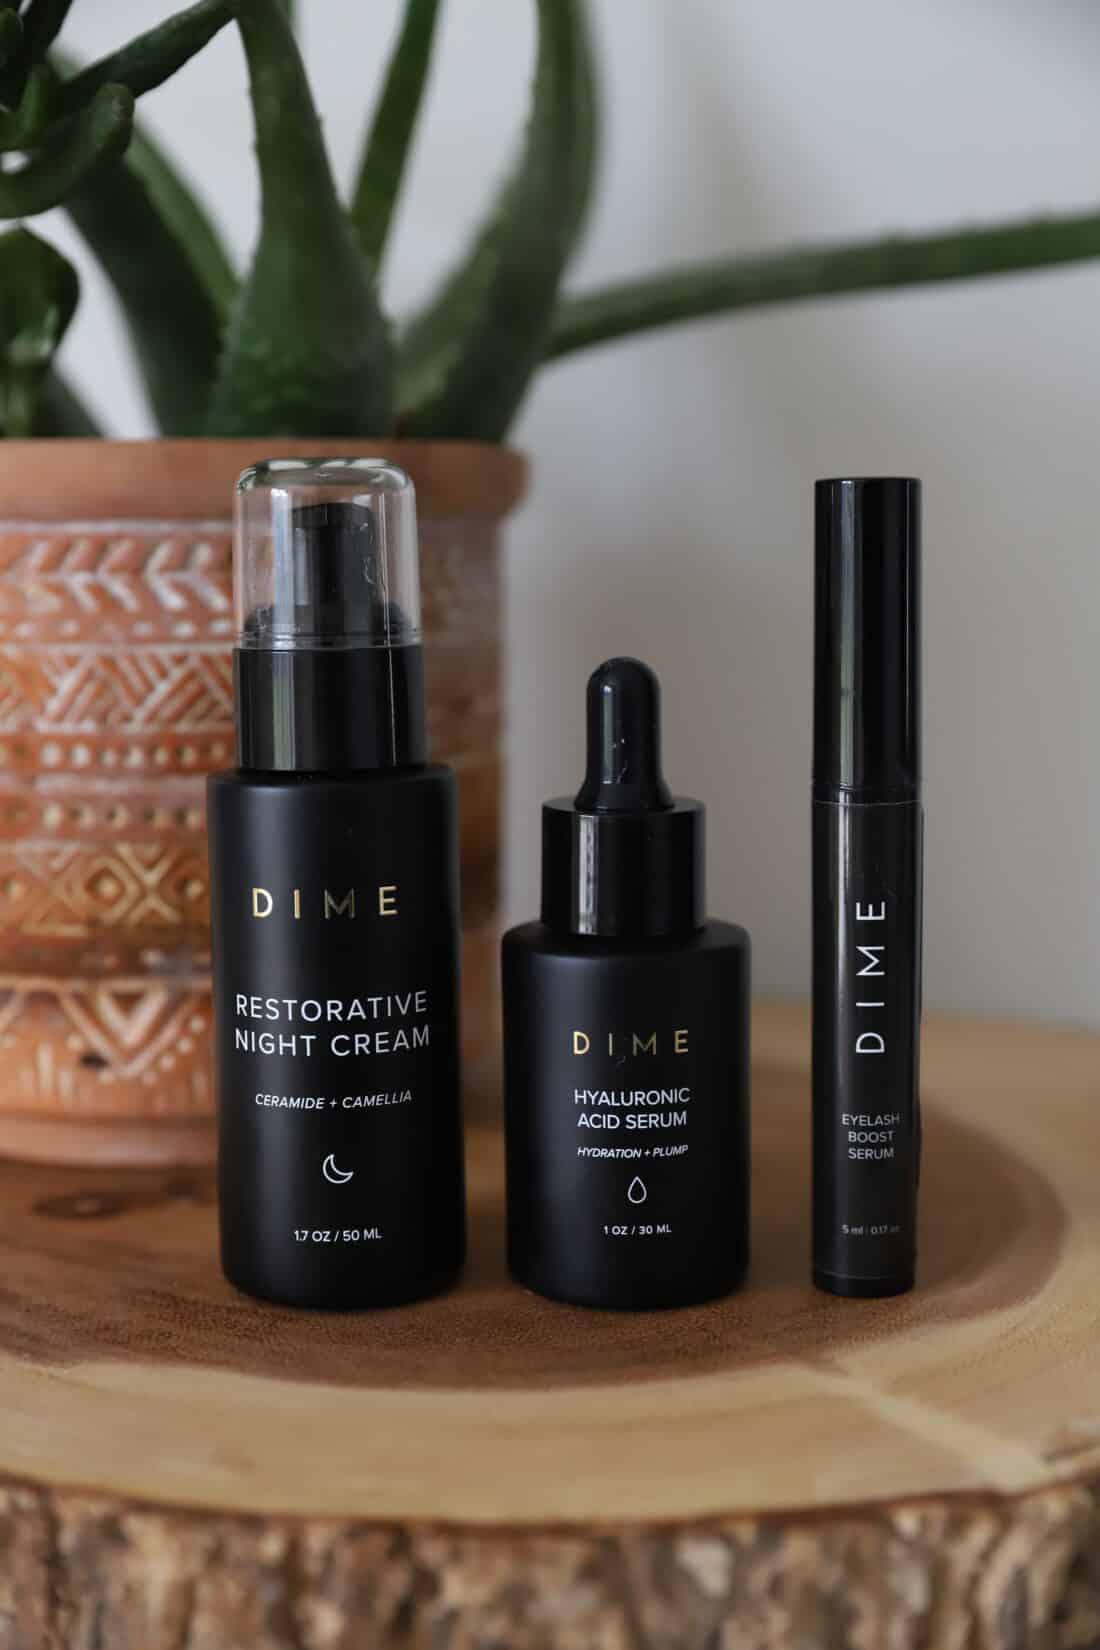 dime beauty evening skin care routine products